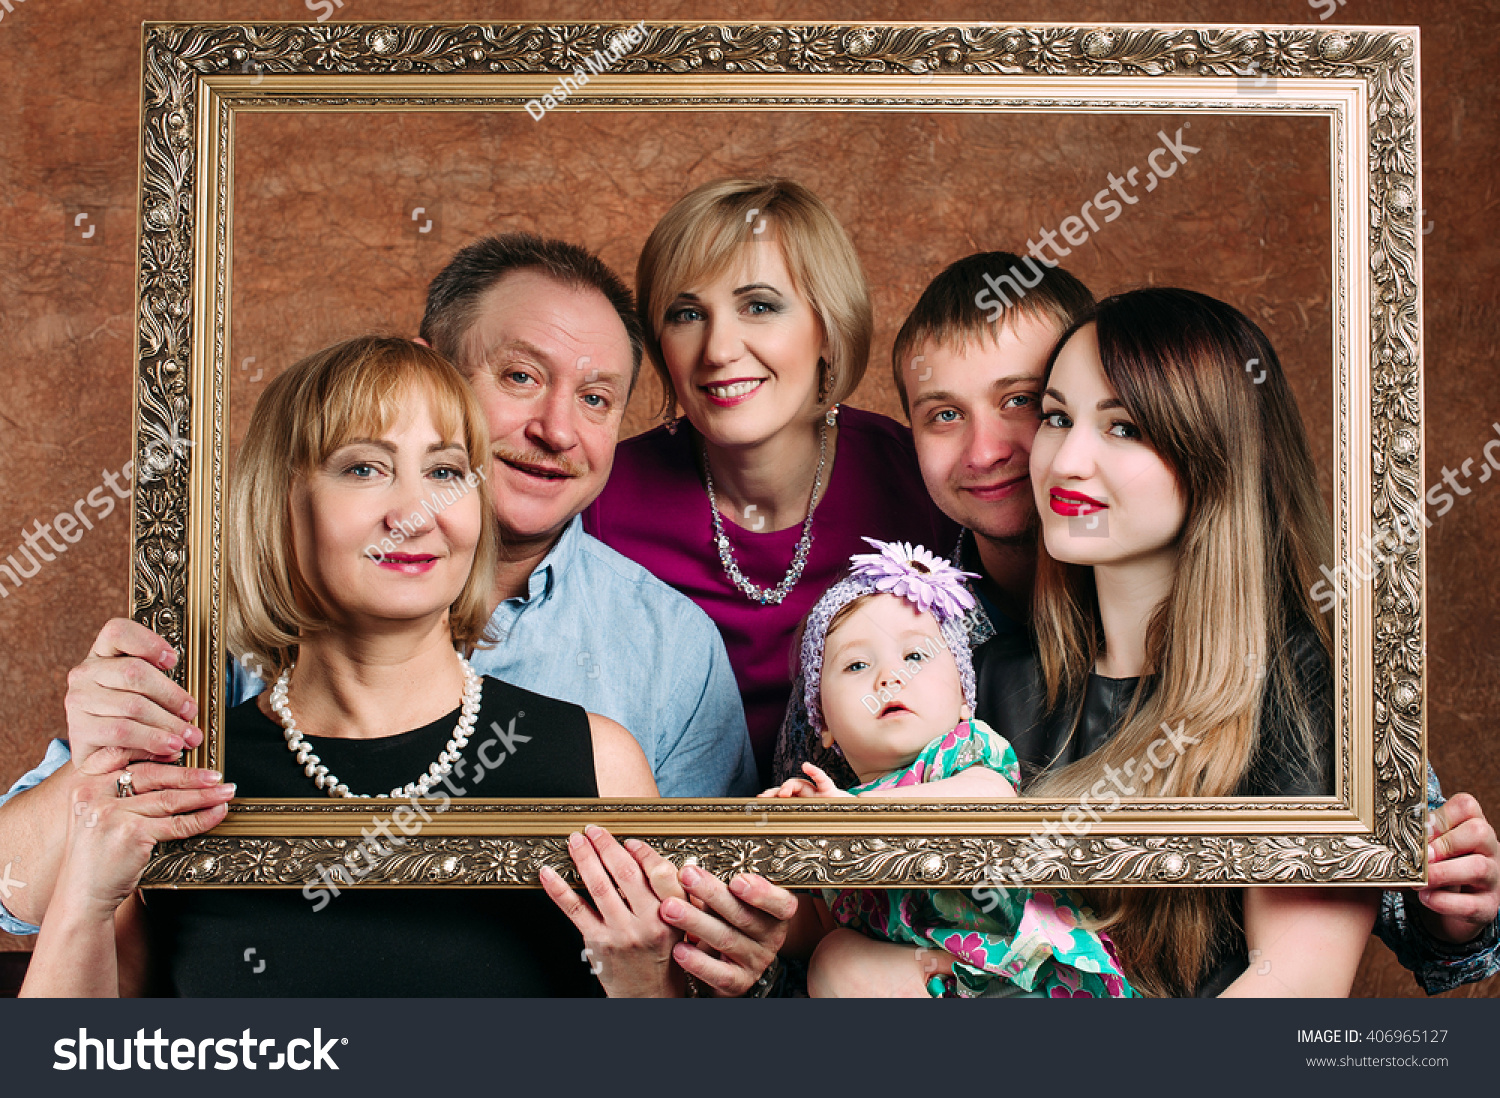 three generation family sitting on sofa together classic portrait in a frame 406965127